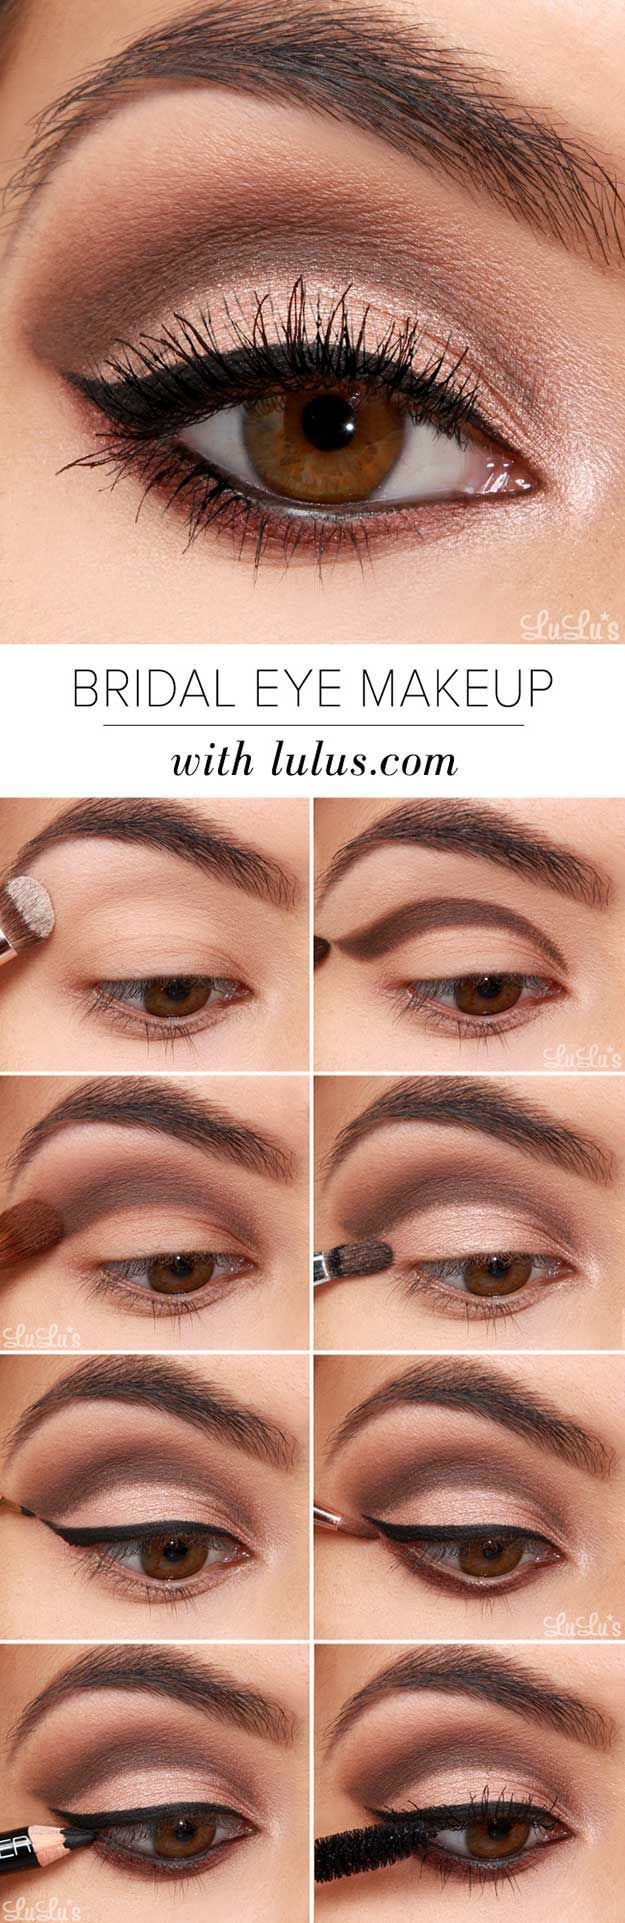 Hottest Eye Makeup Trends for 2018 - Bridal Eye Makeup - It's Time To Check Ou...